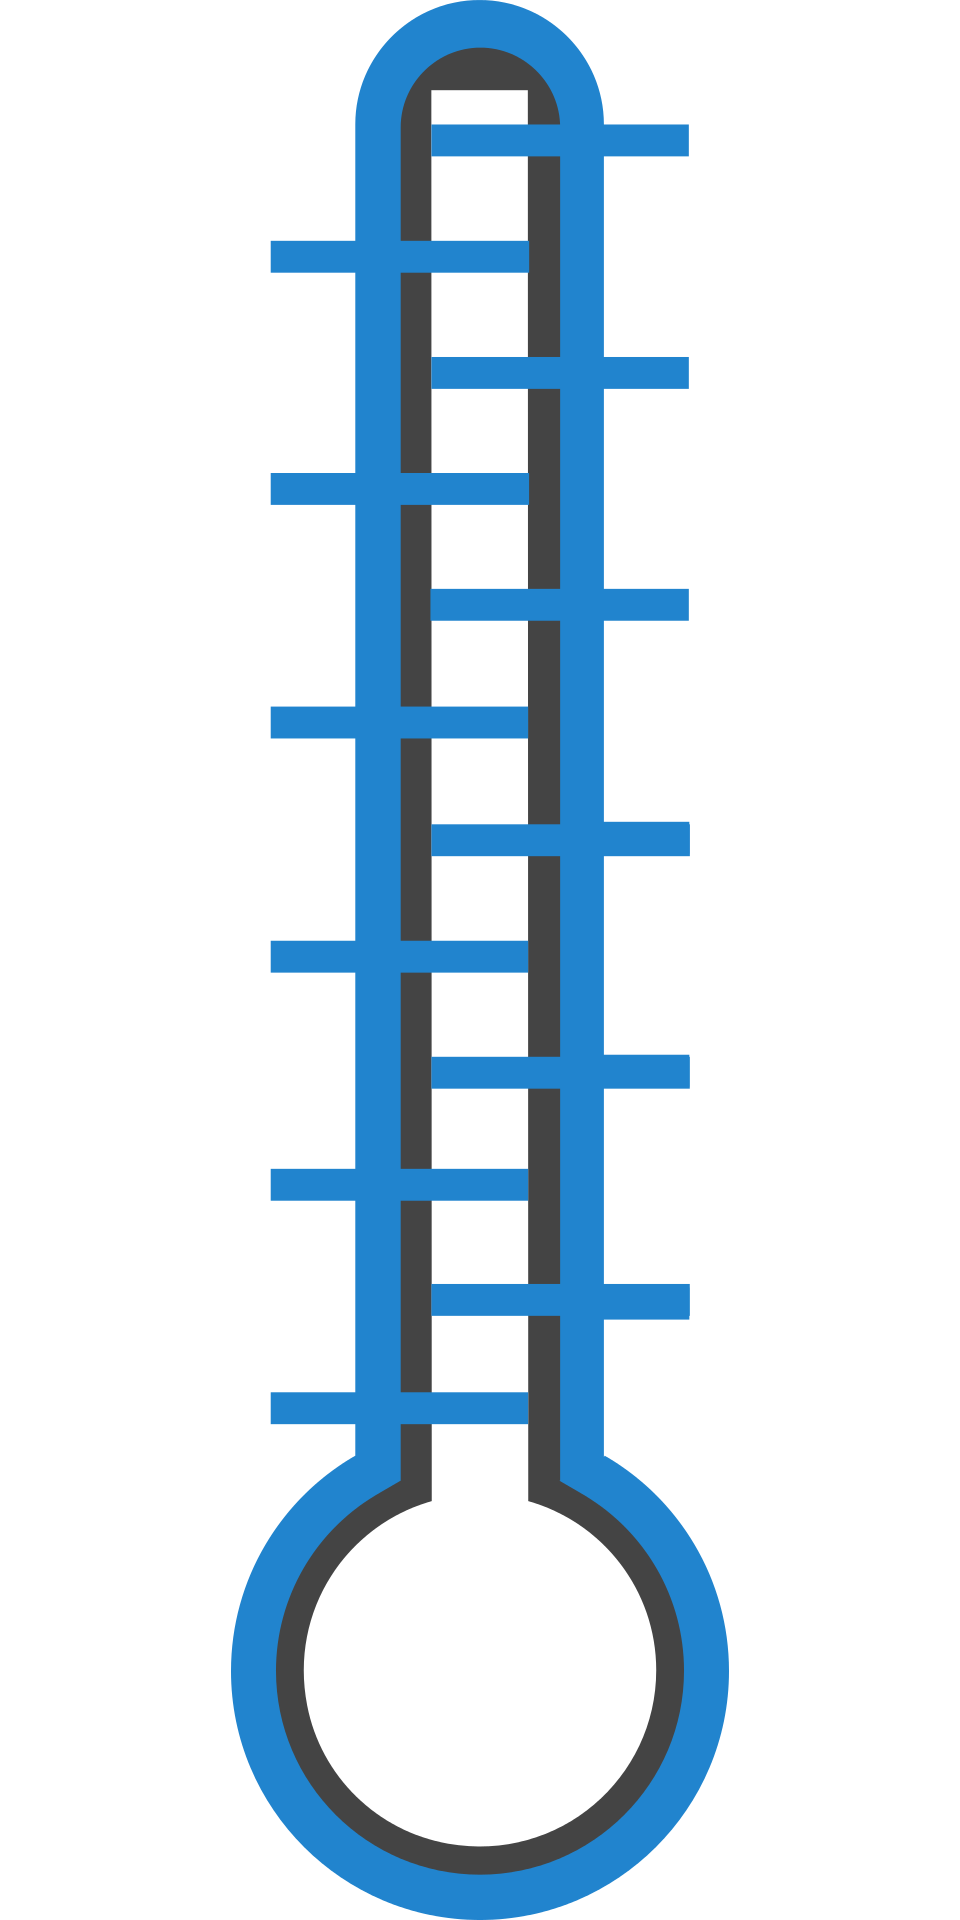 Symbol of a thermometer